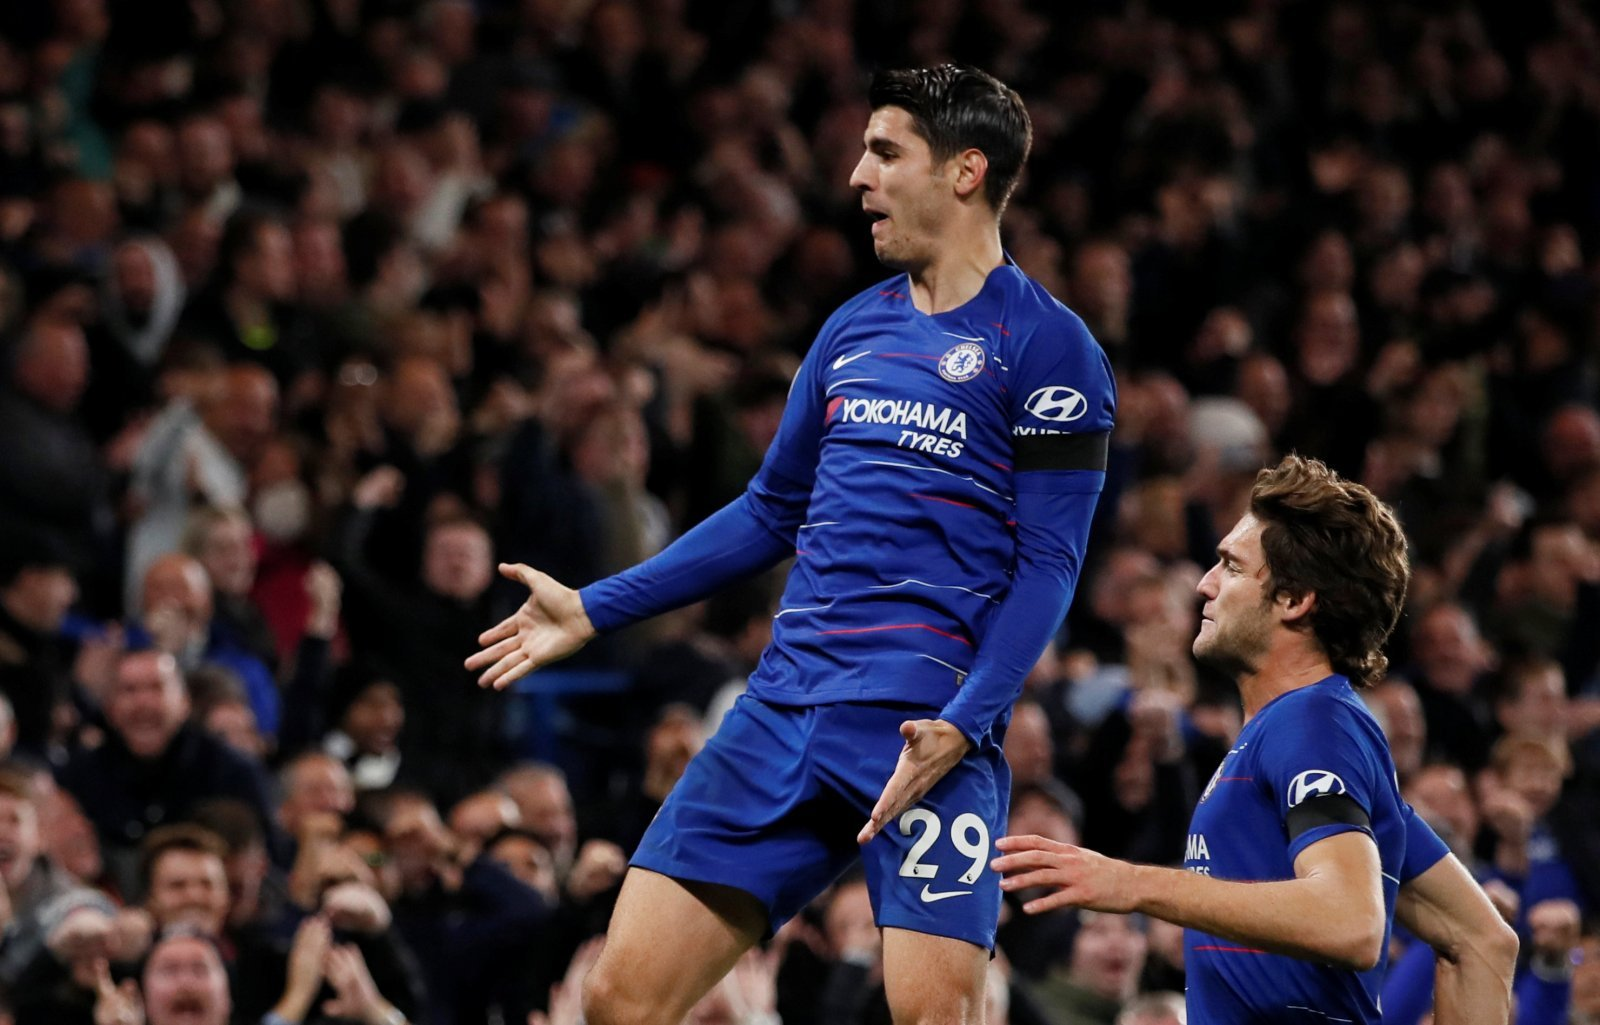 Alvaro Morata looks closer to the exit door than ever before, should be sold in January